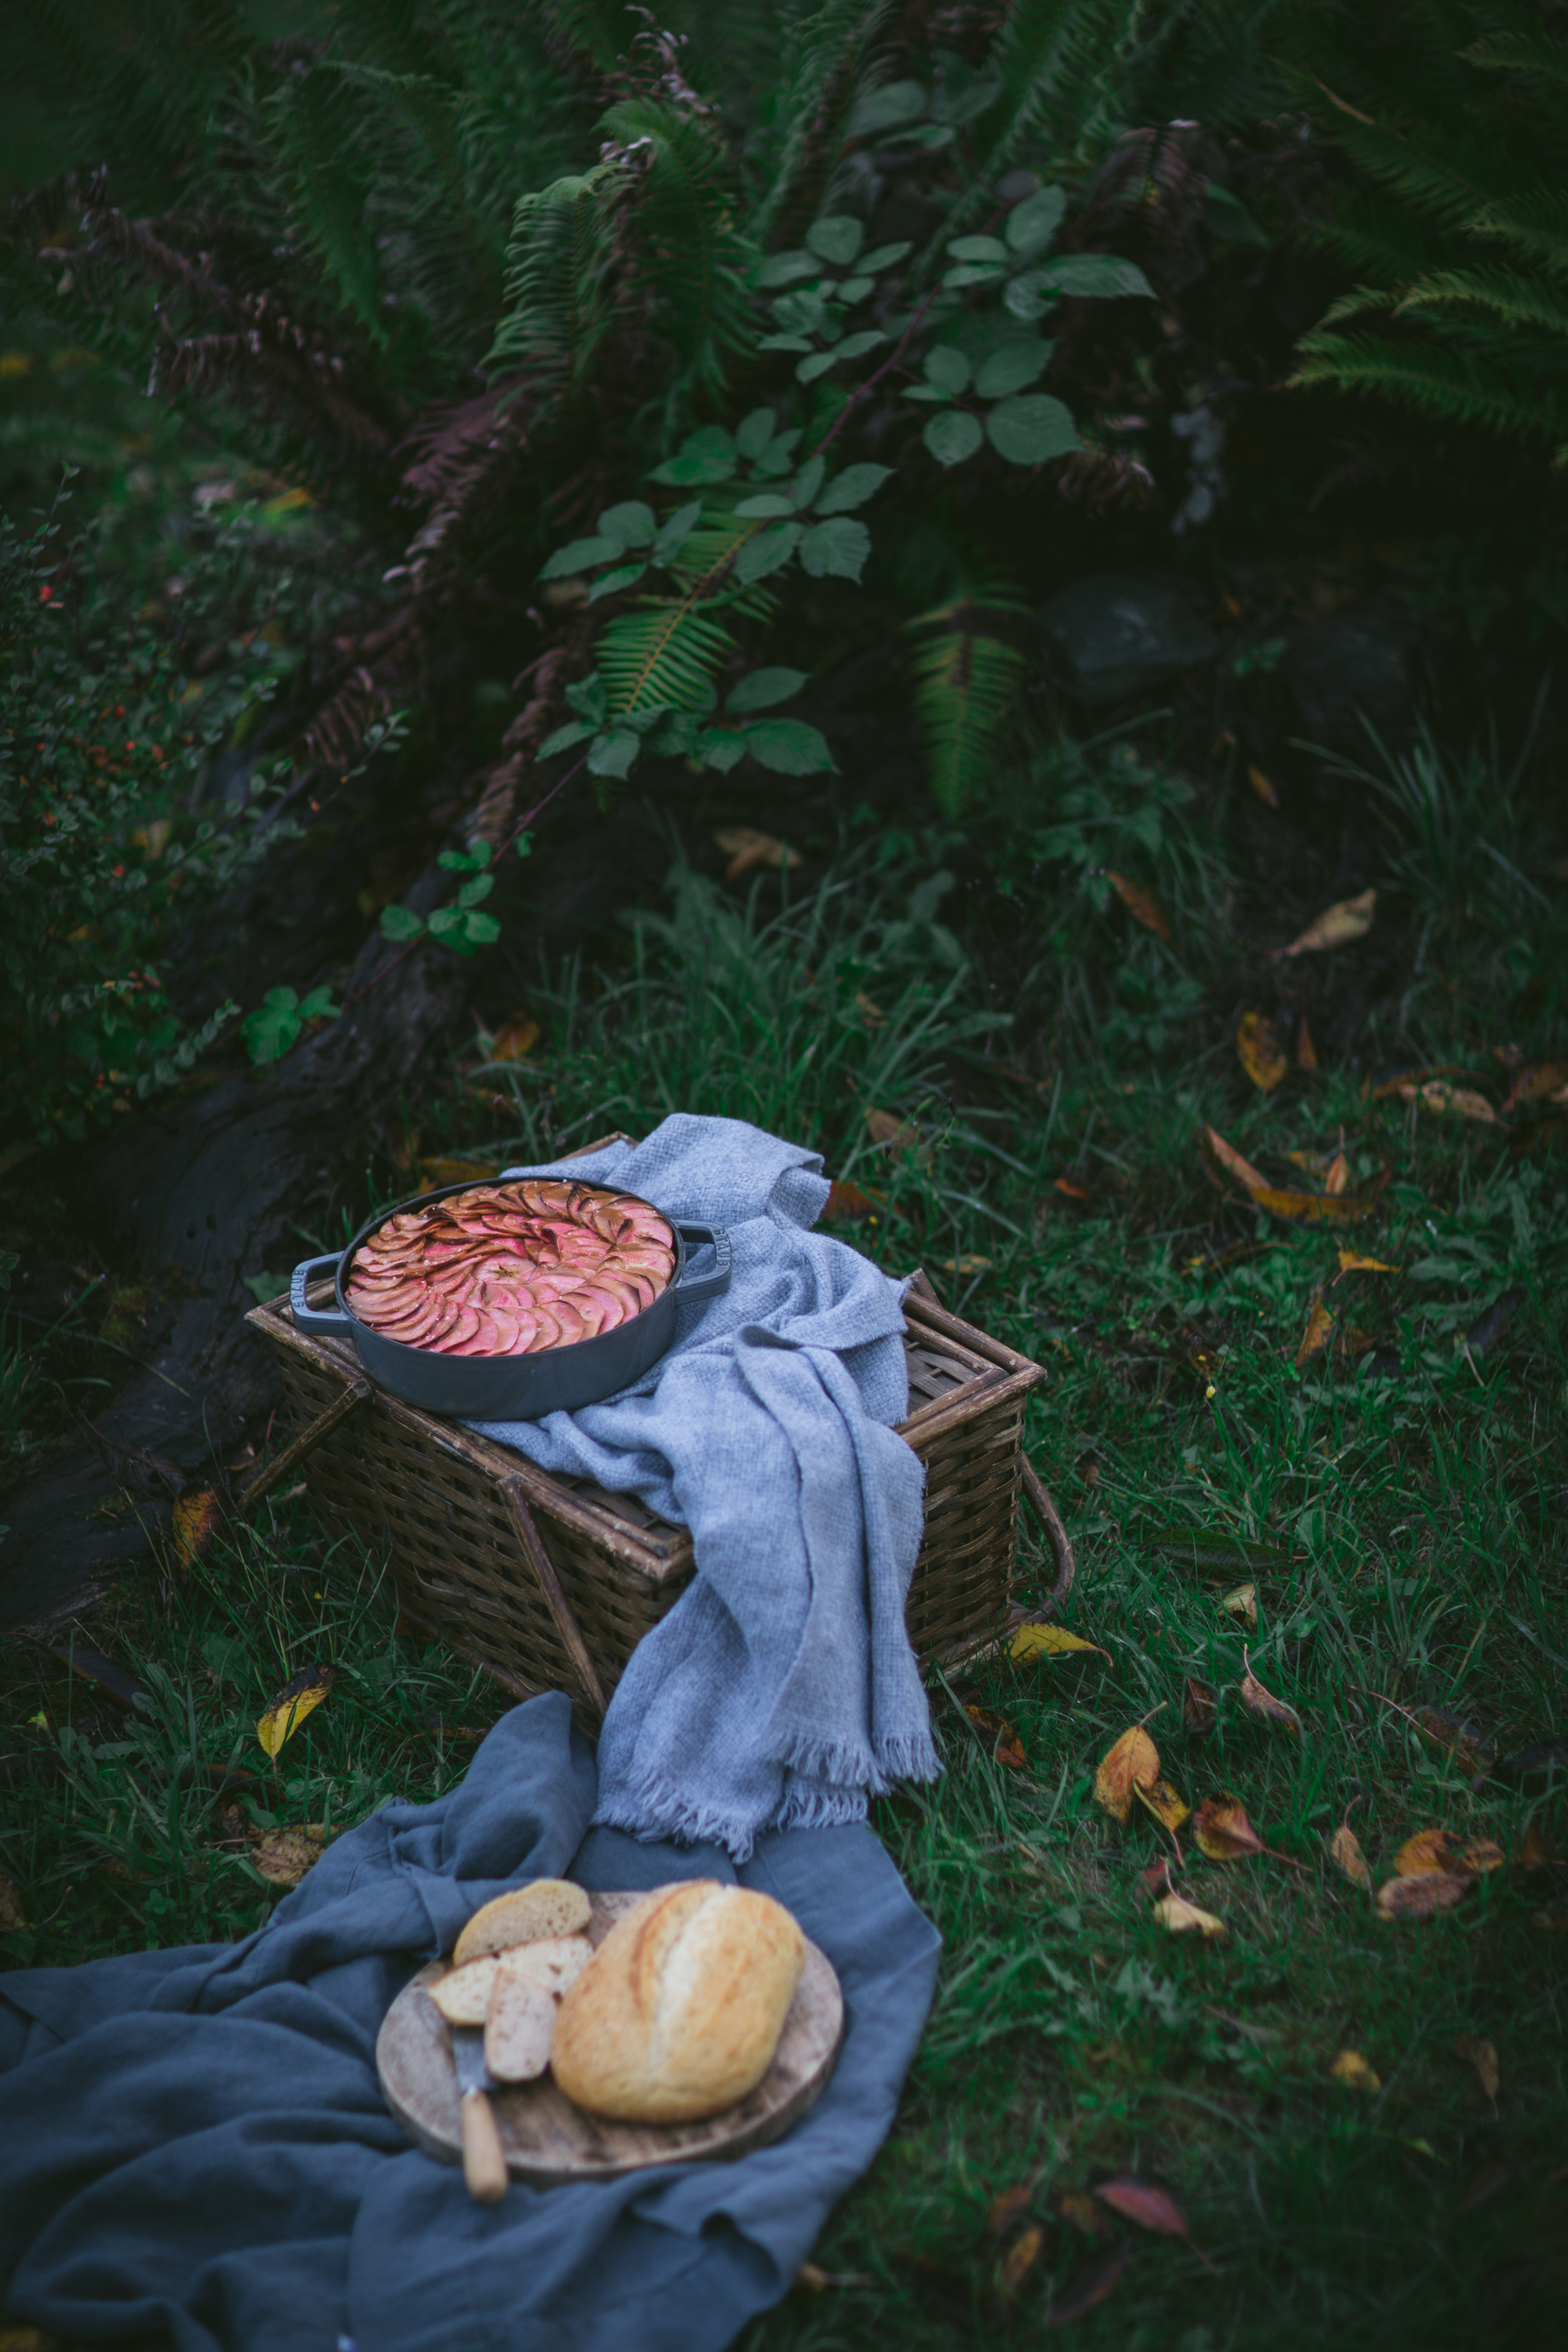 Apple Raisin Pecan Bread Pudding With Salted Caramel Drizzle With La Brea Bakery by Eva Kosmas Flores